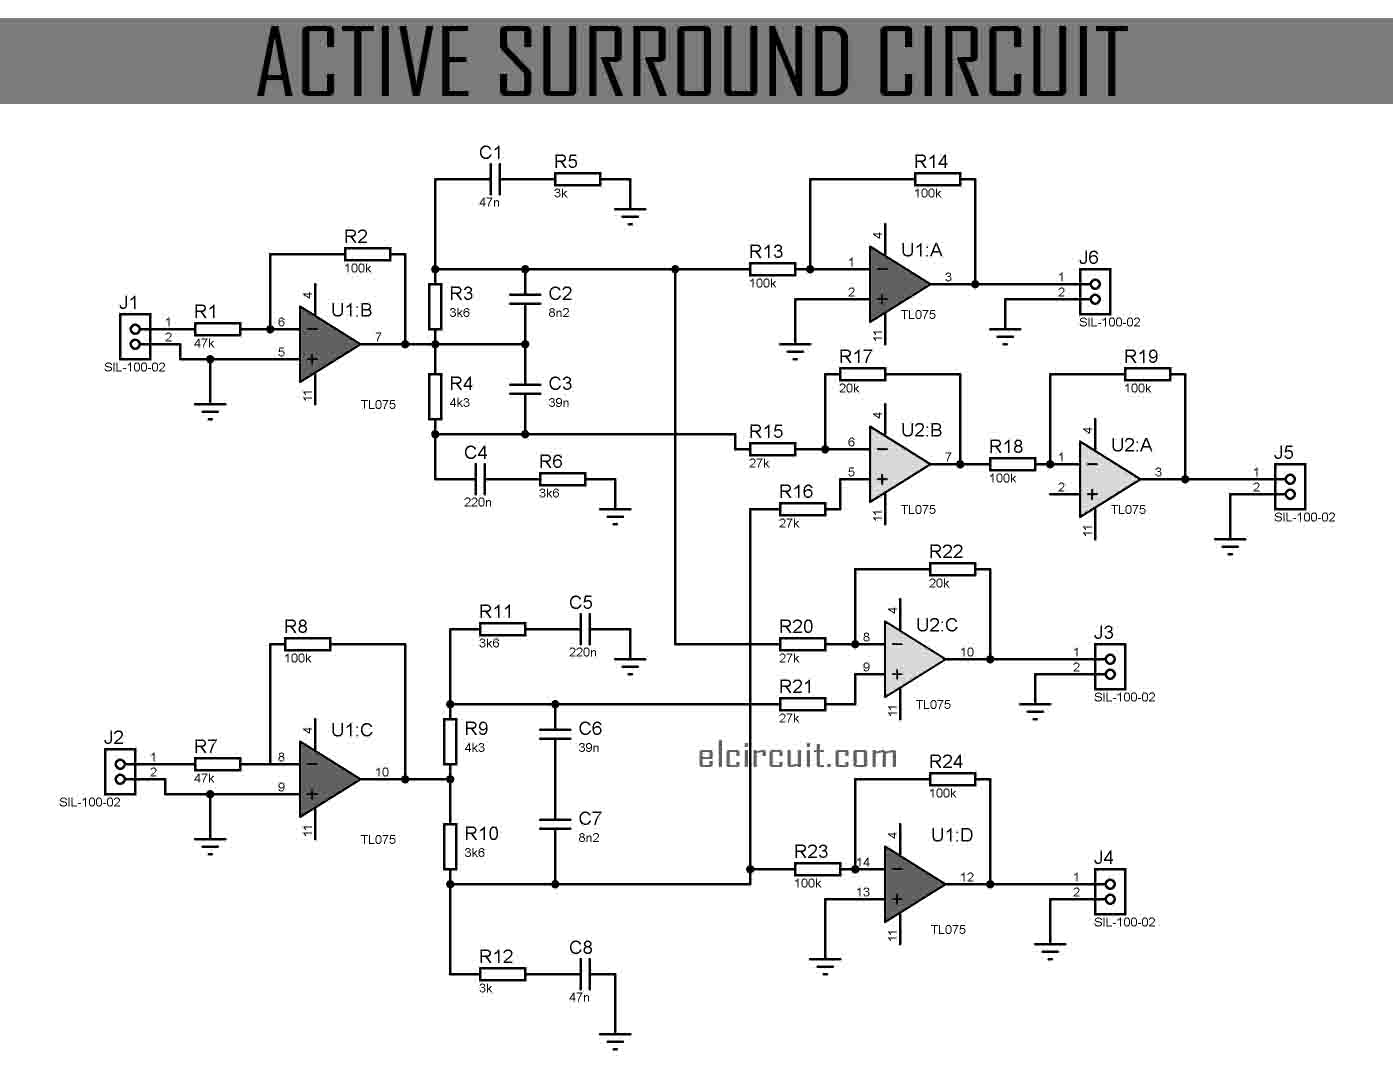 small resolution of  add speaker subwoofer and amplifier to add more booming bass sound below the active surround sound circuit diagram include regulated power supply 12v